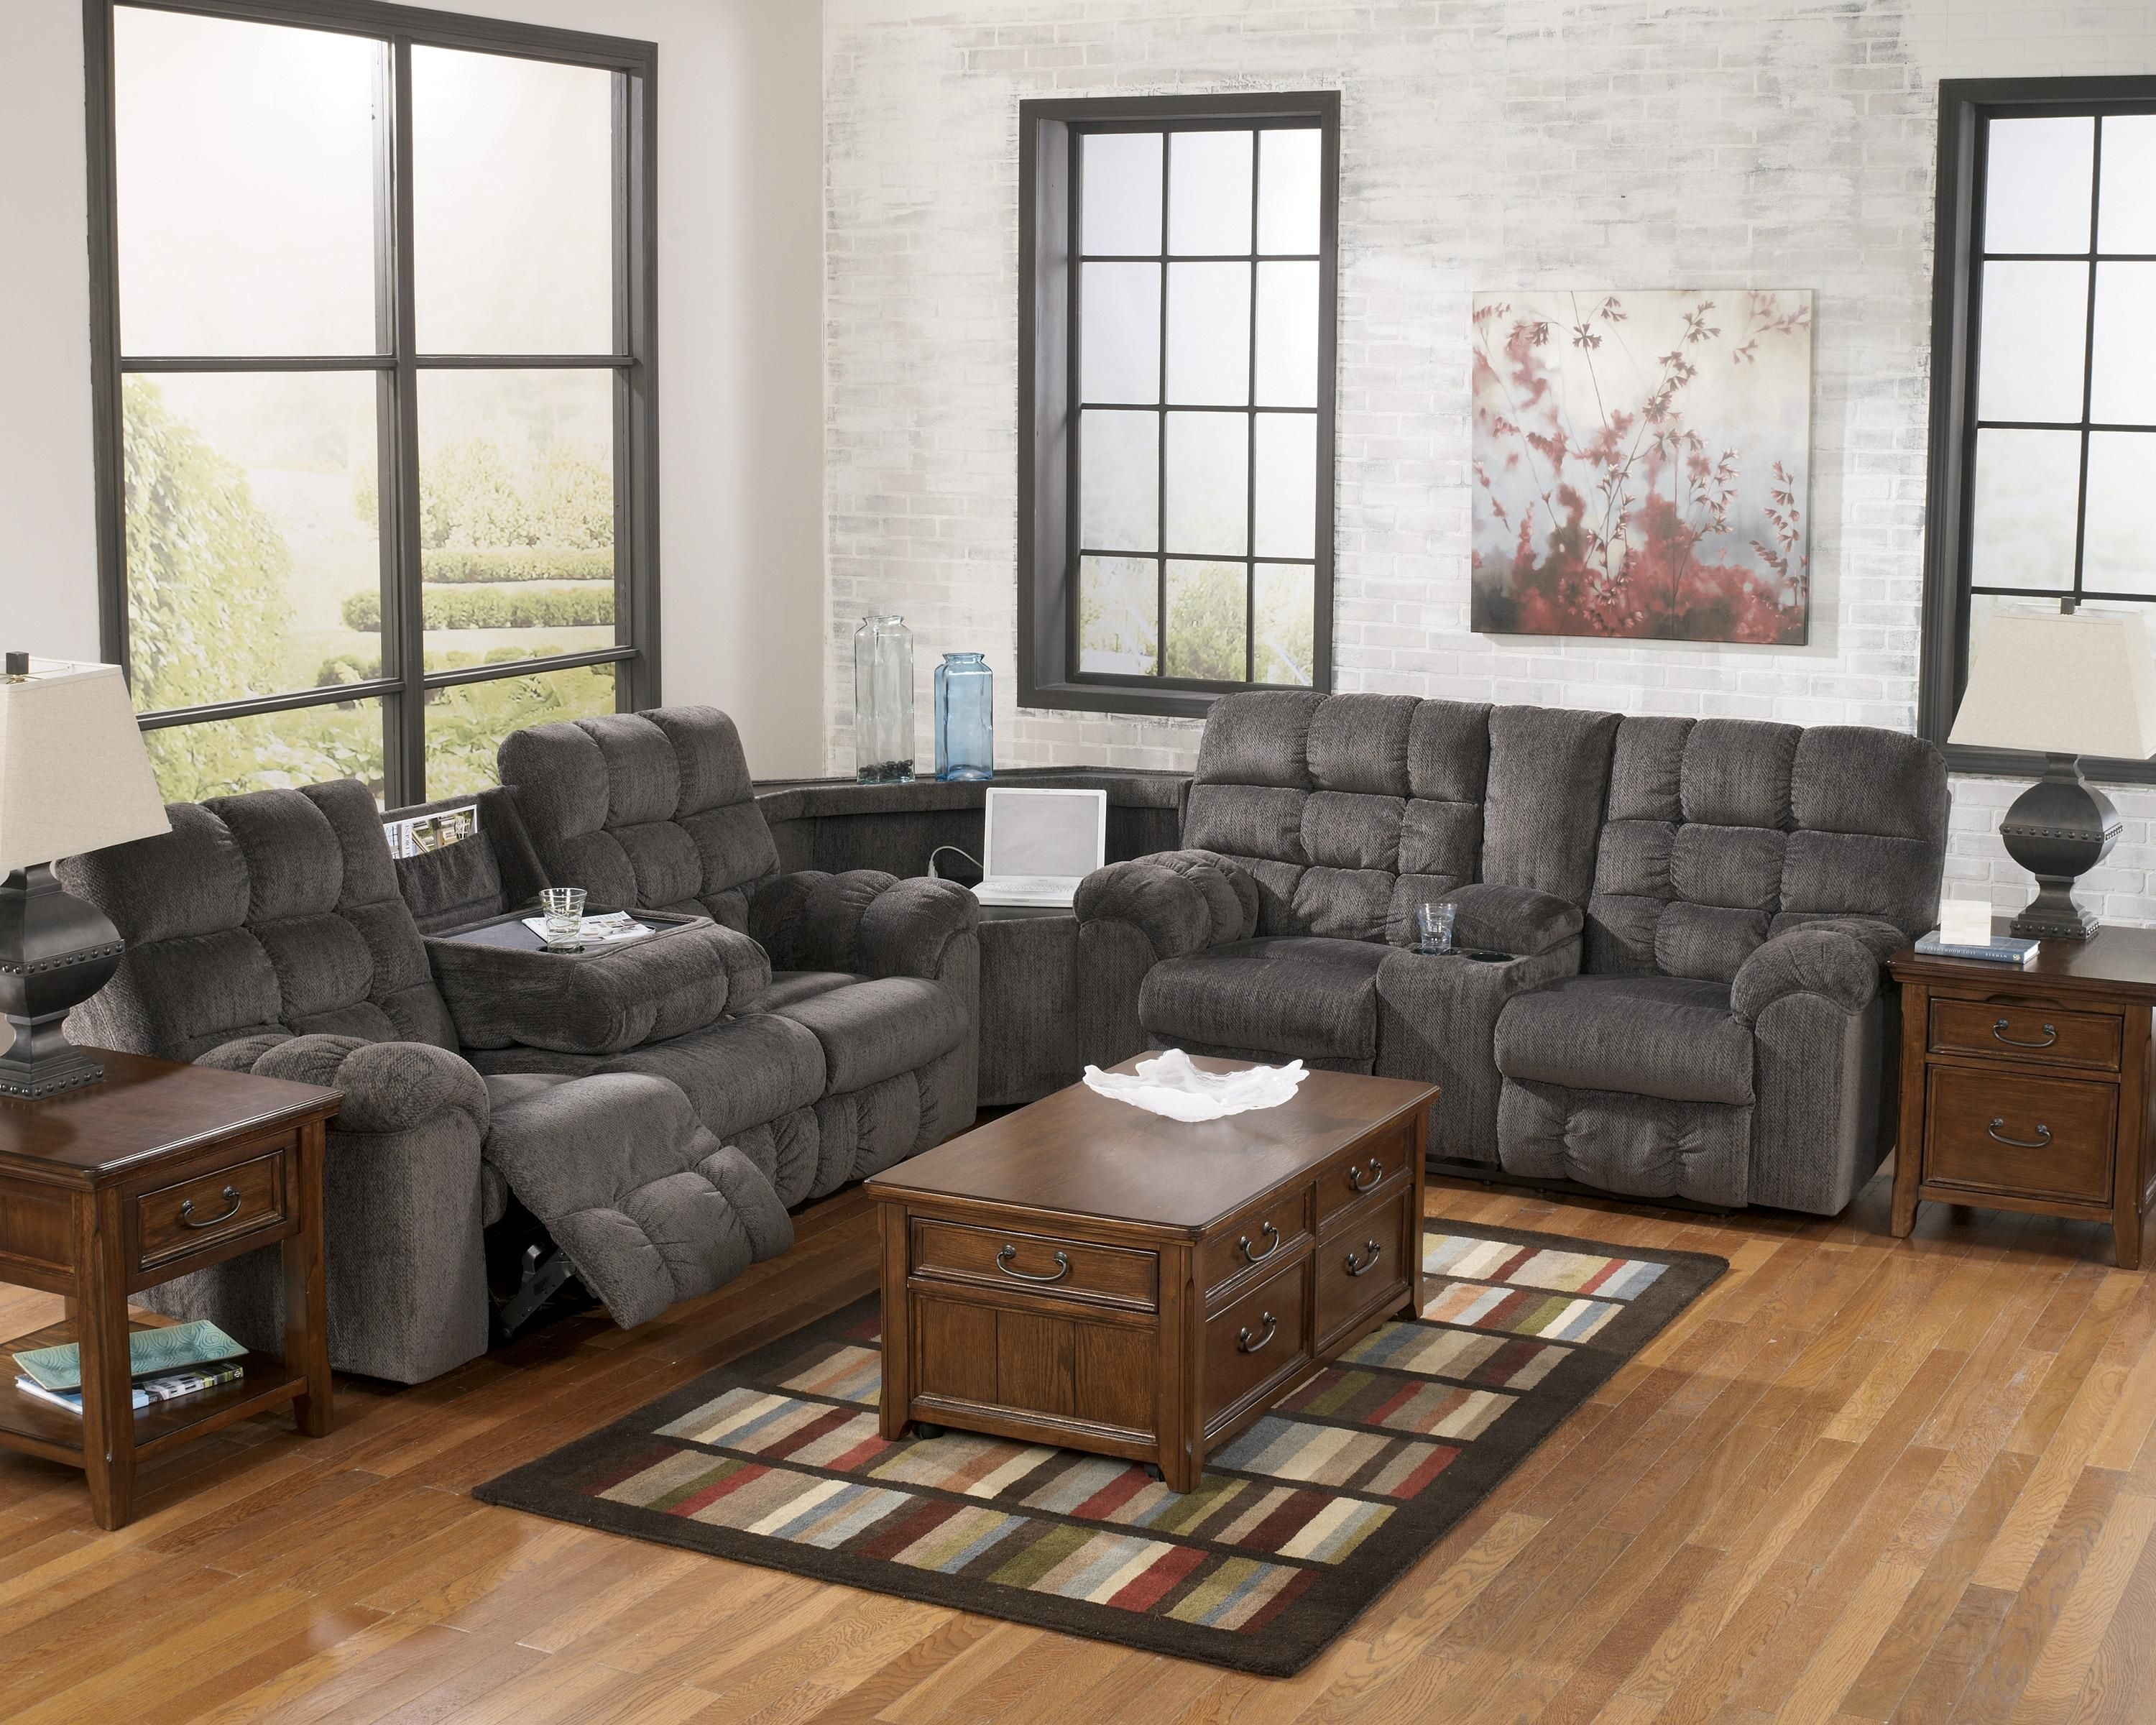 Reclining Sectional Sofa With Right Side Loveseat, Cup Holders And With Sectional Sofas With Cup Holders (Image 6 of 10)